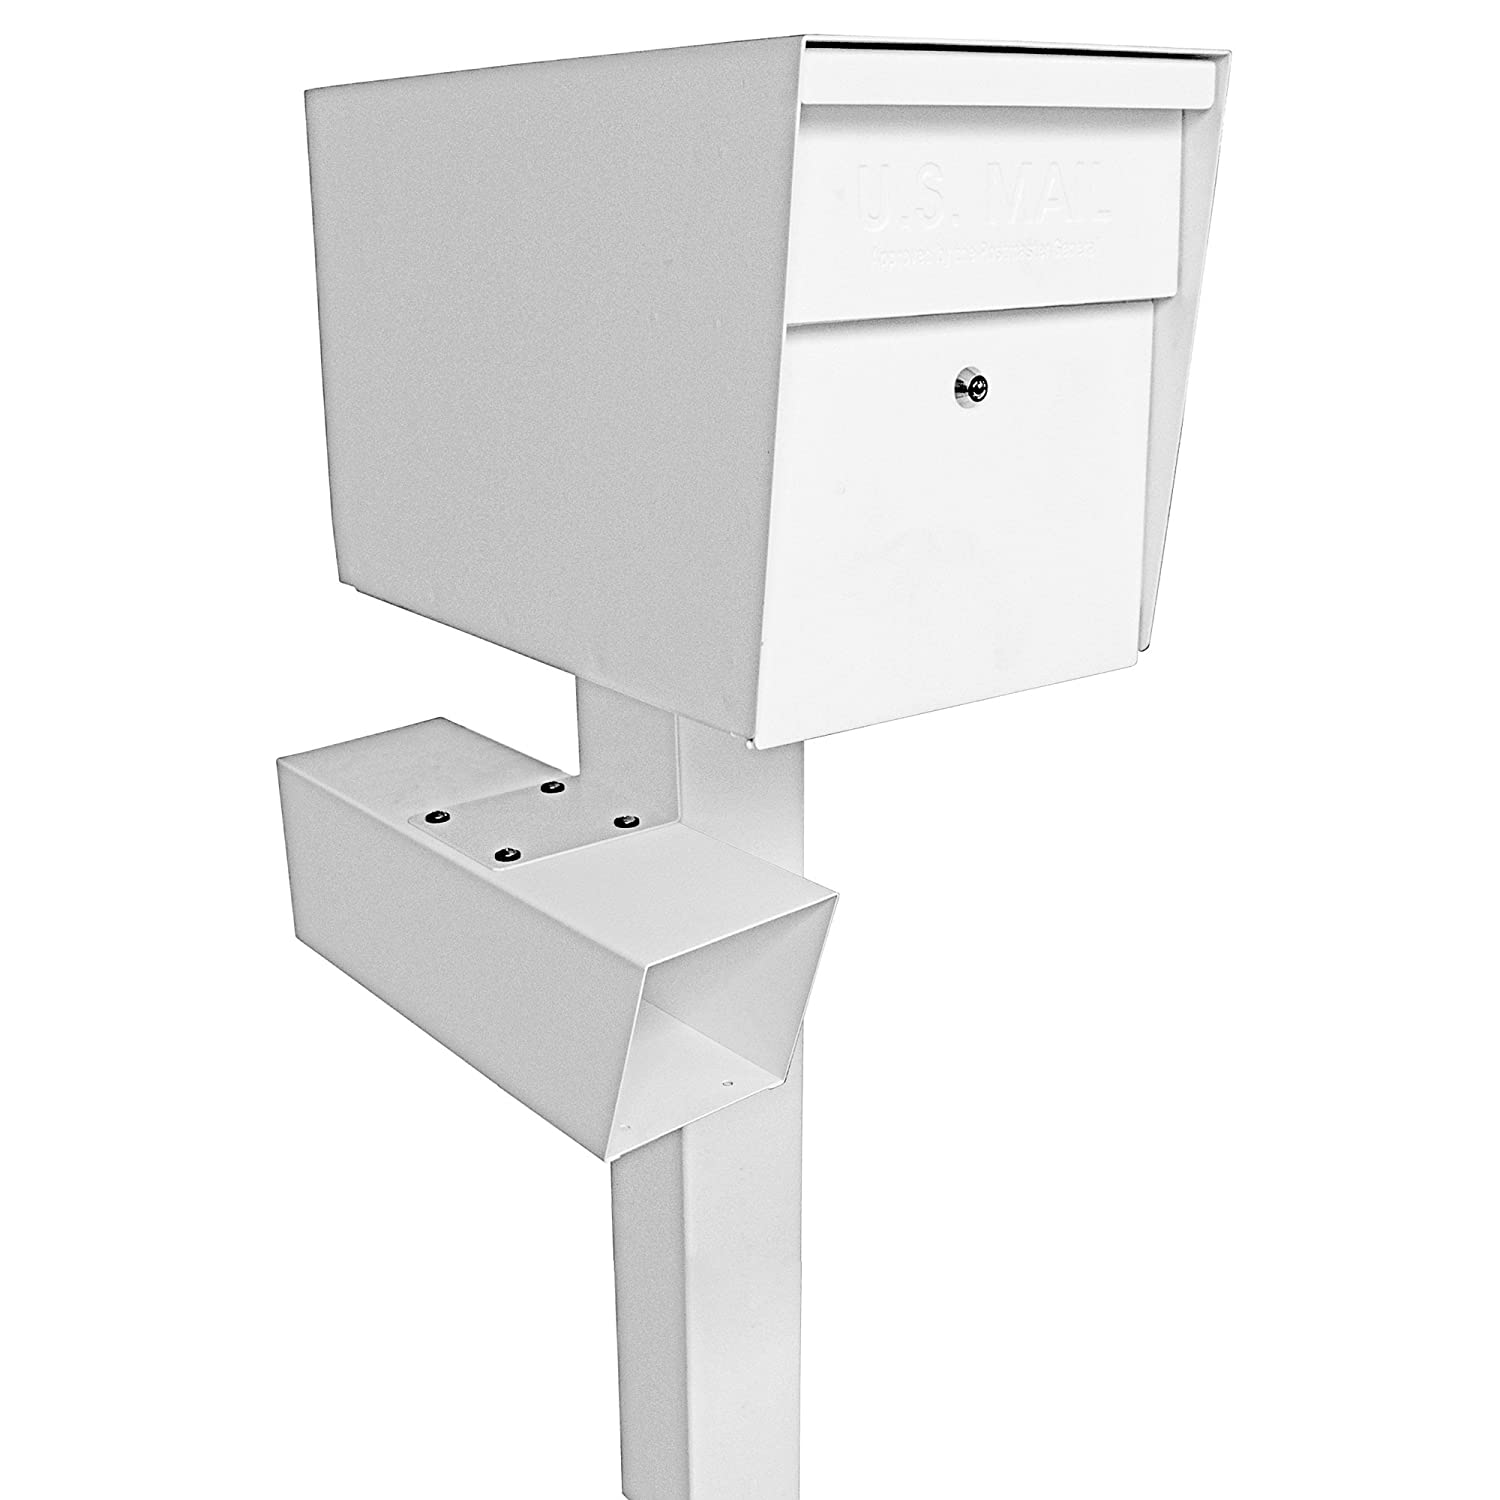 White Mail Boss 7113 Newspaper Holder